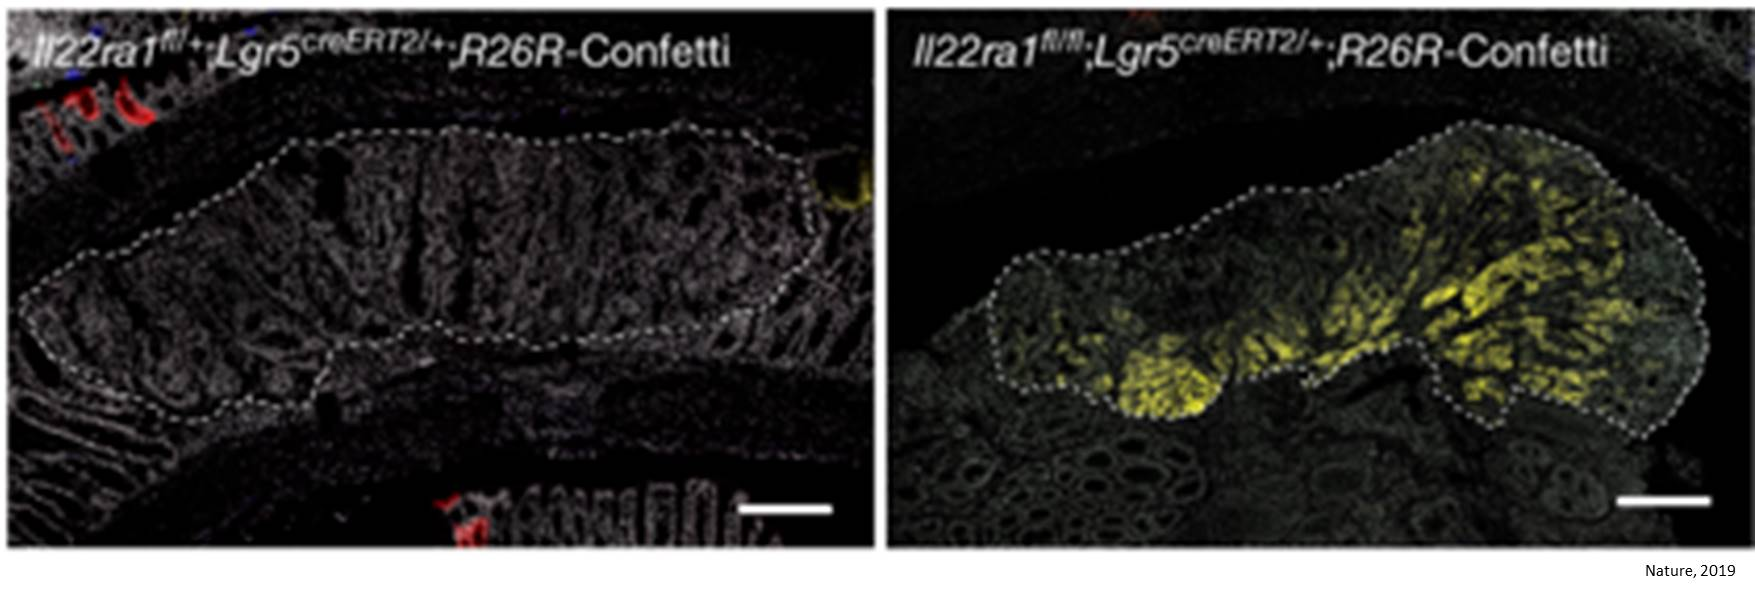 Interleukin-22 protects intestinal stem cells against genotoxic stress